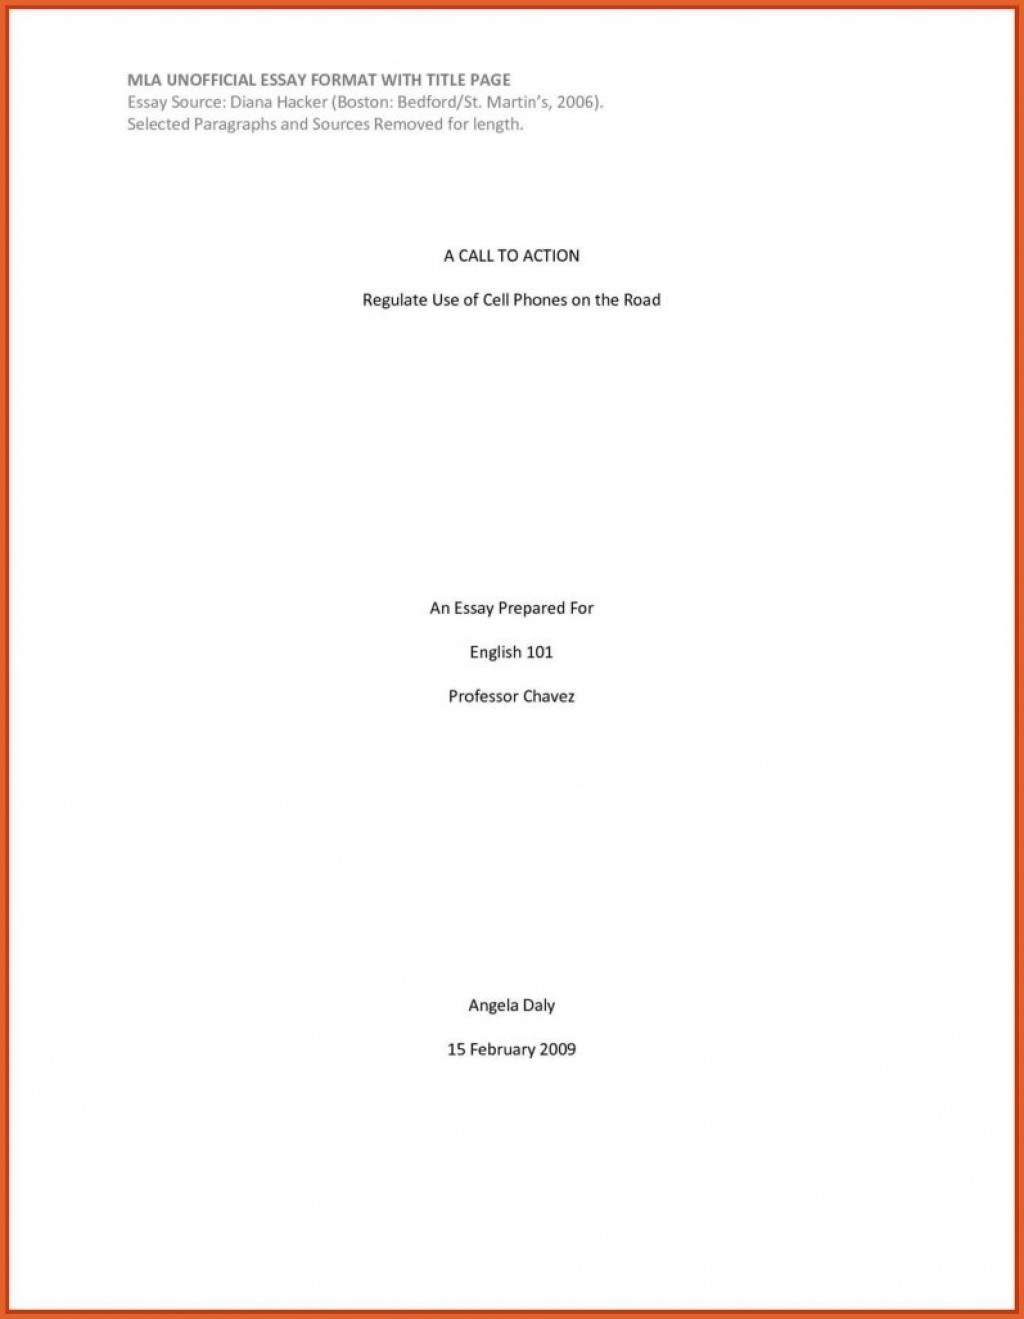 001 First Page Research Paper Mla Format Title Cover Template Sheet For Purdue Owl Keepvip Teaching Sample Unique Style The Of A Large